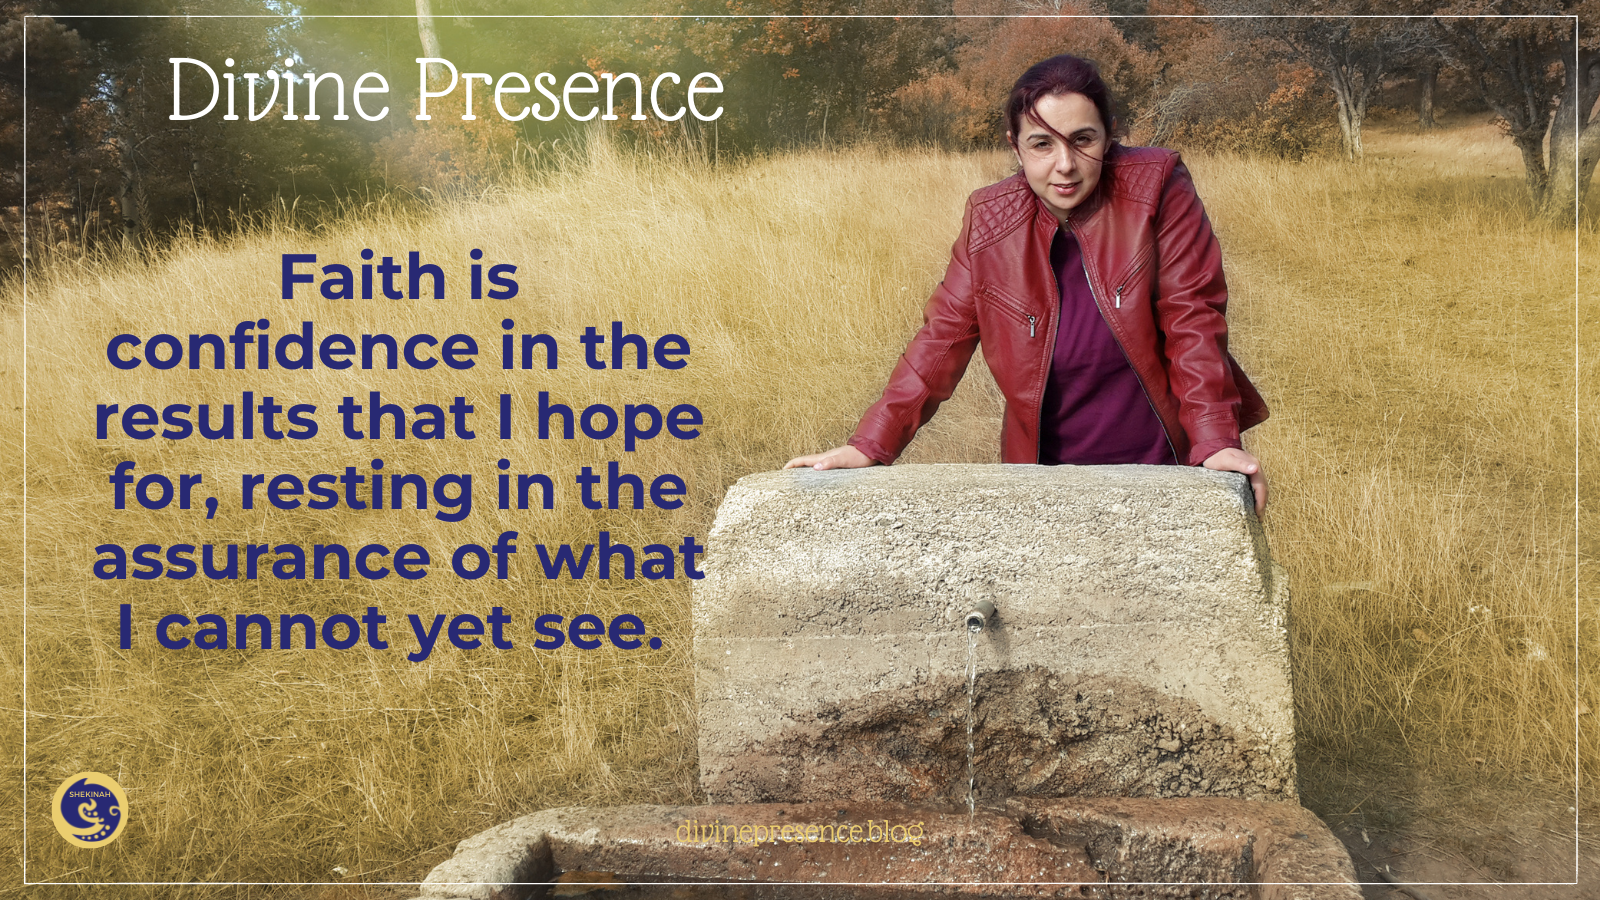 Faith is confidence in the results that I hope for, resting in the assurance of what I cannot yet see.